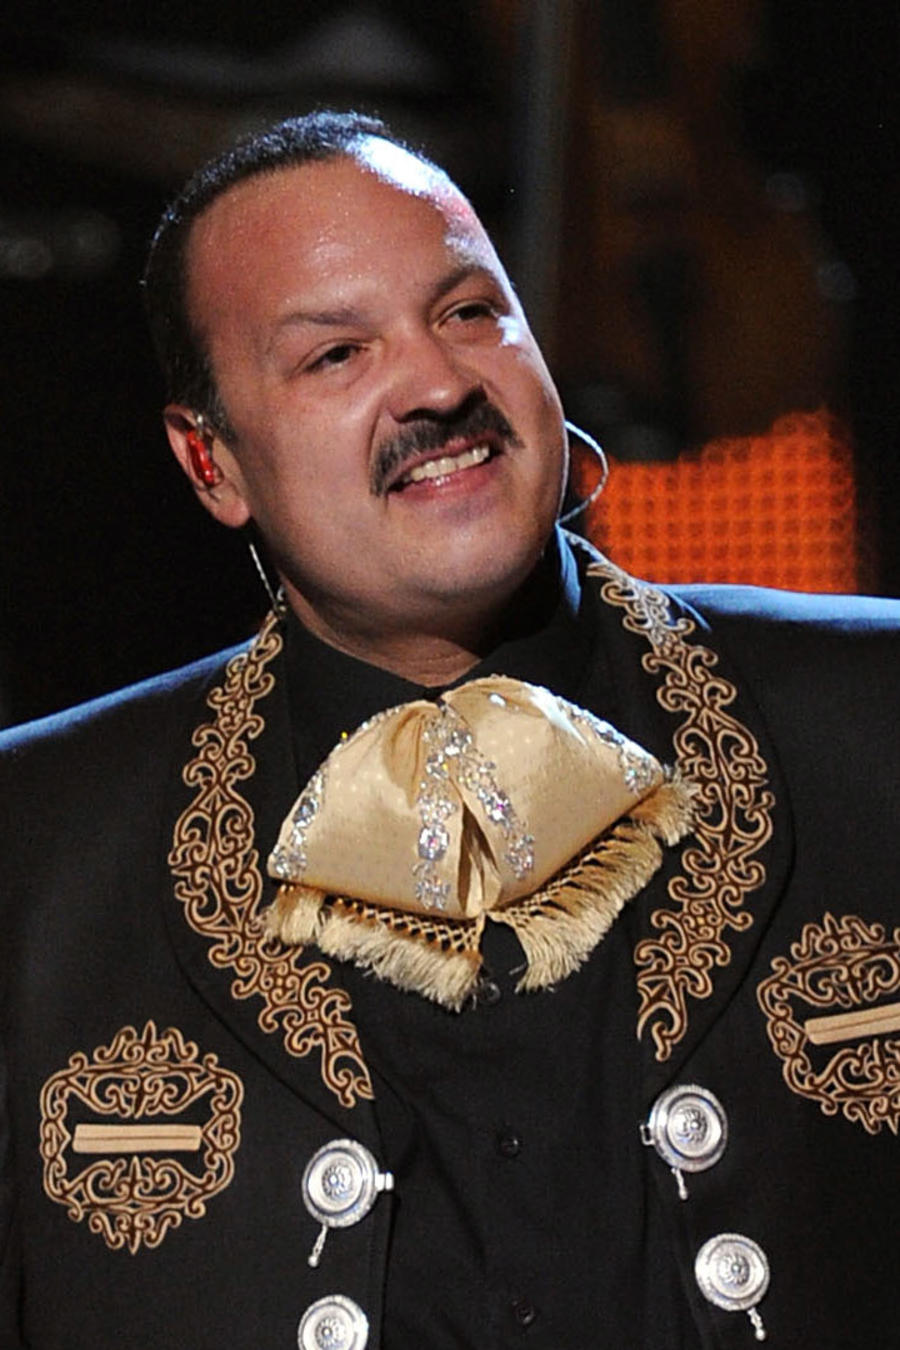 Pepe Aguilar en los Latin GRAMMY Awards 2011